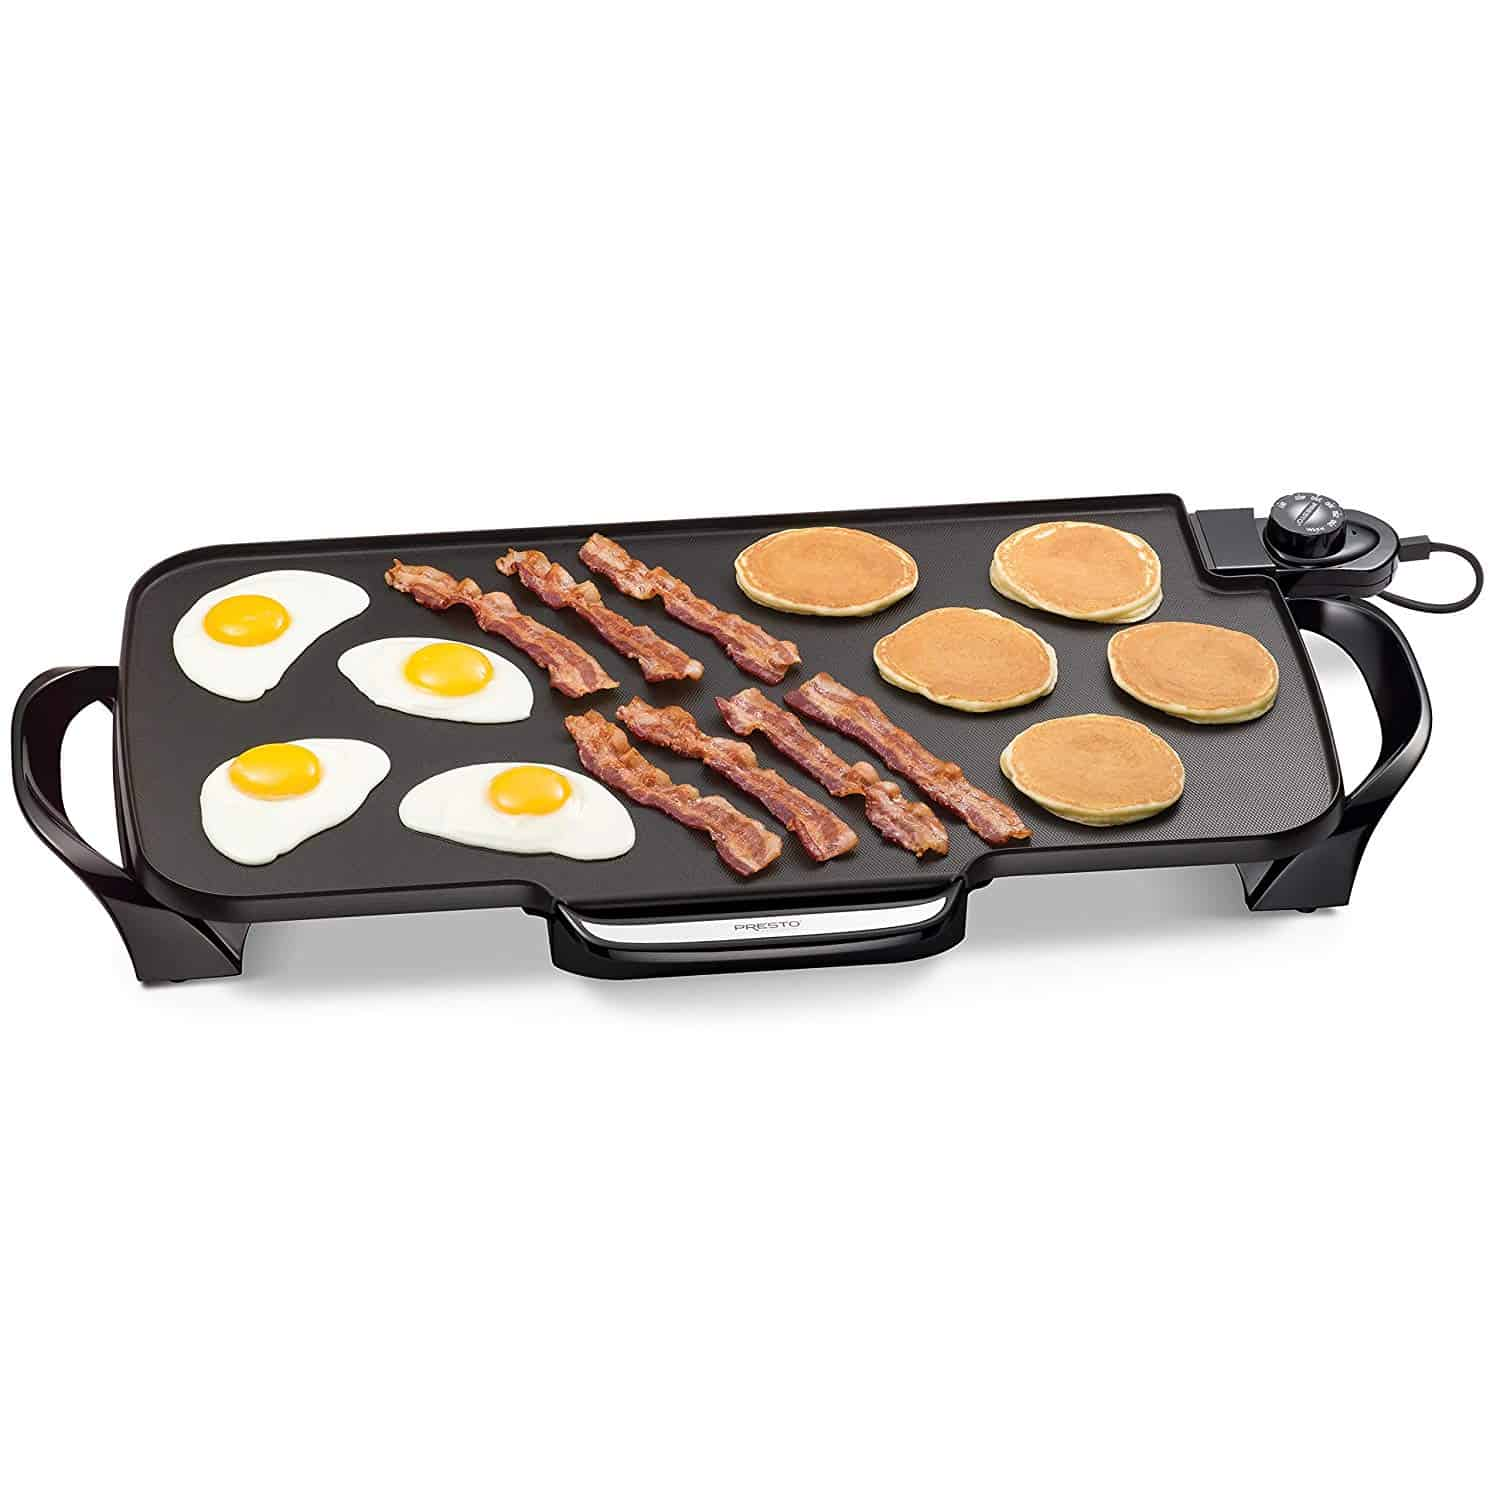 "presto 22"" electric griddle"